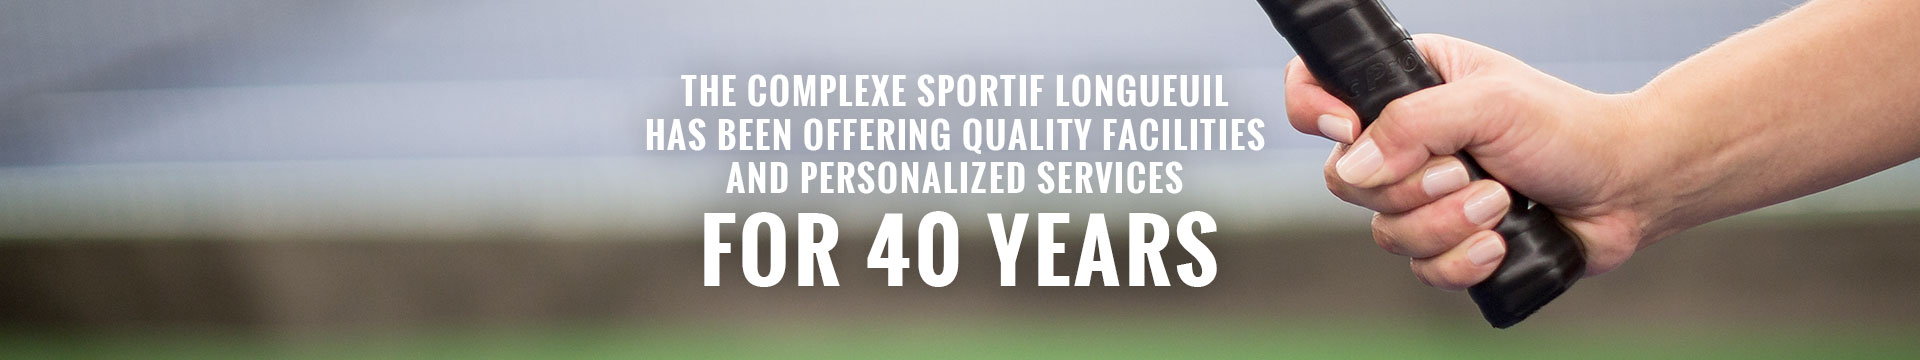 40 years of quality